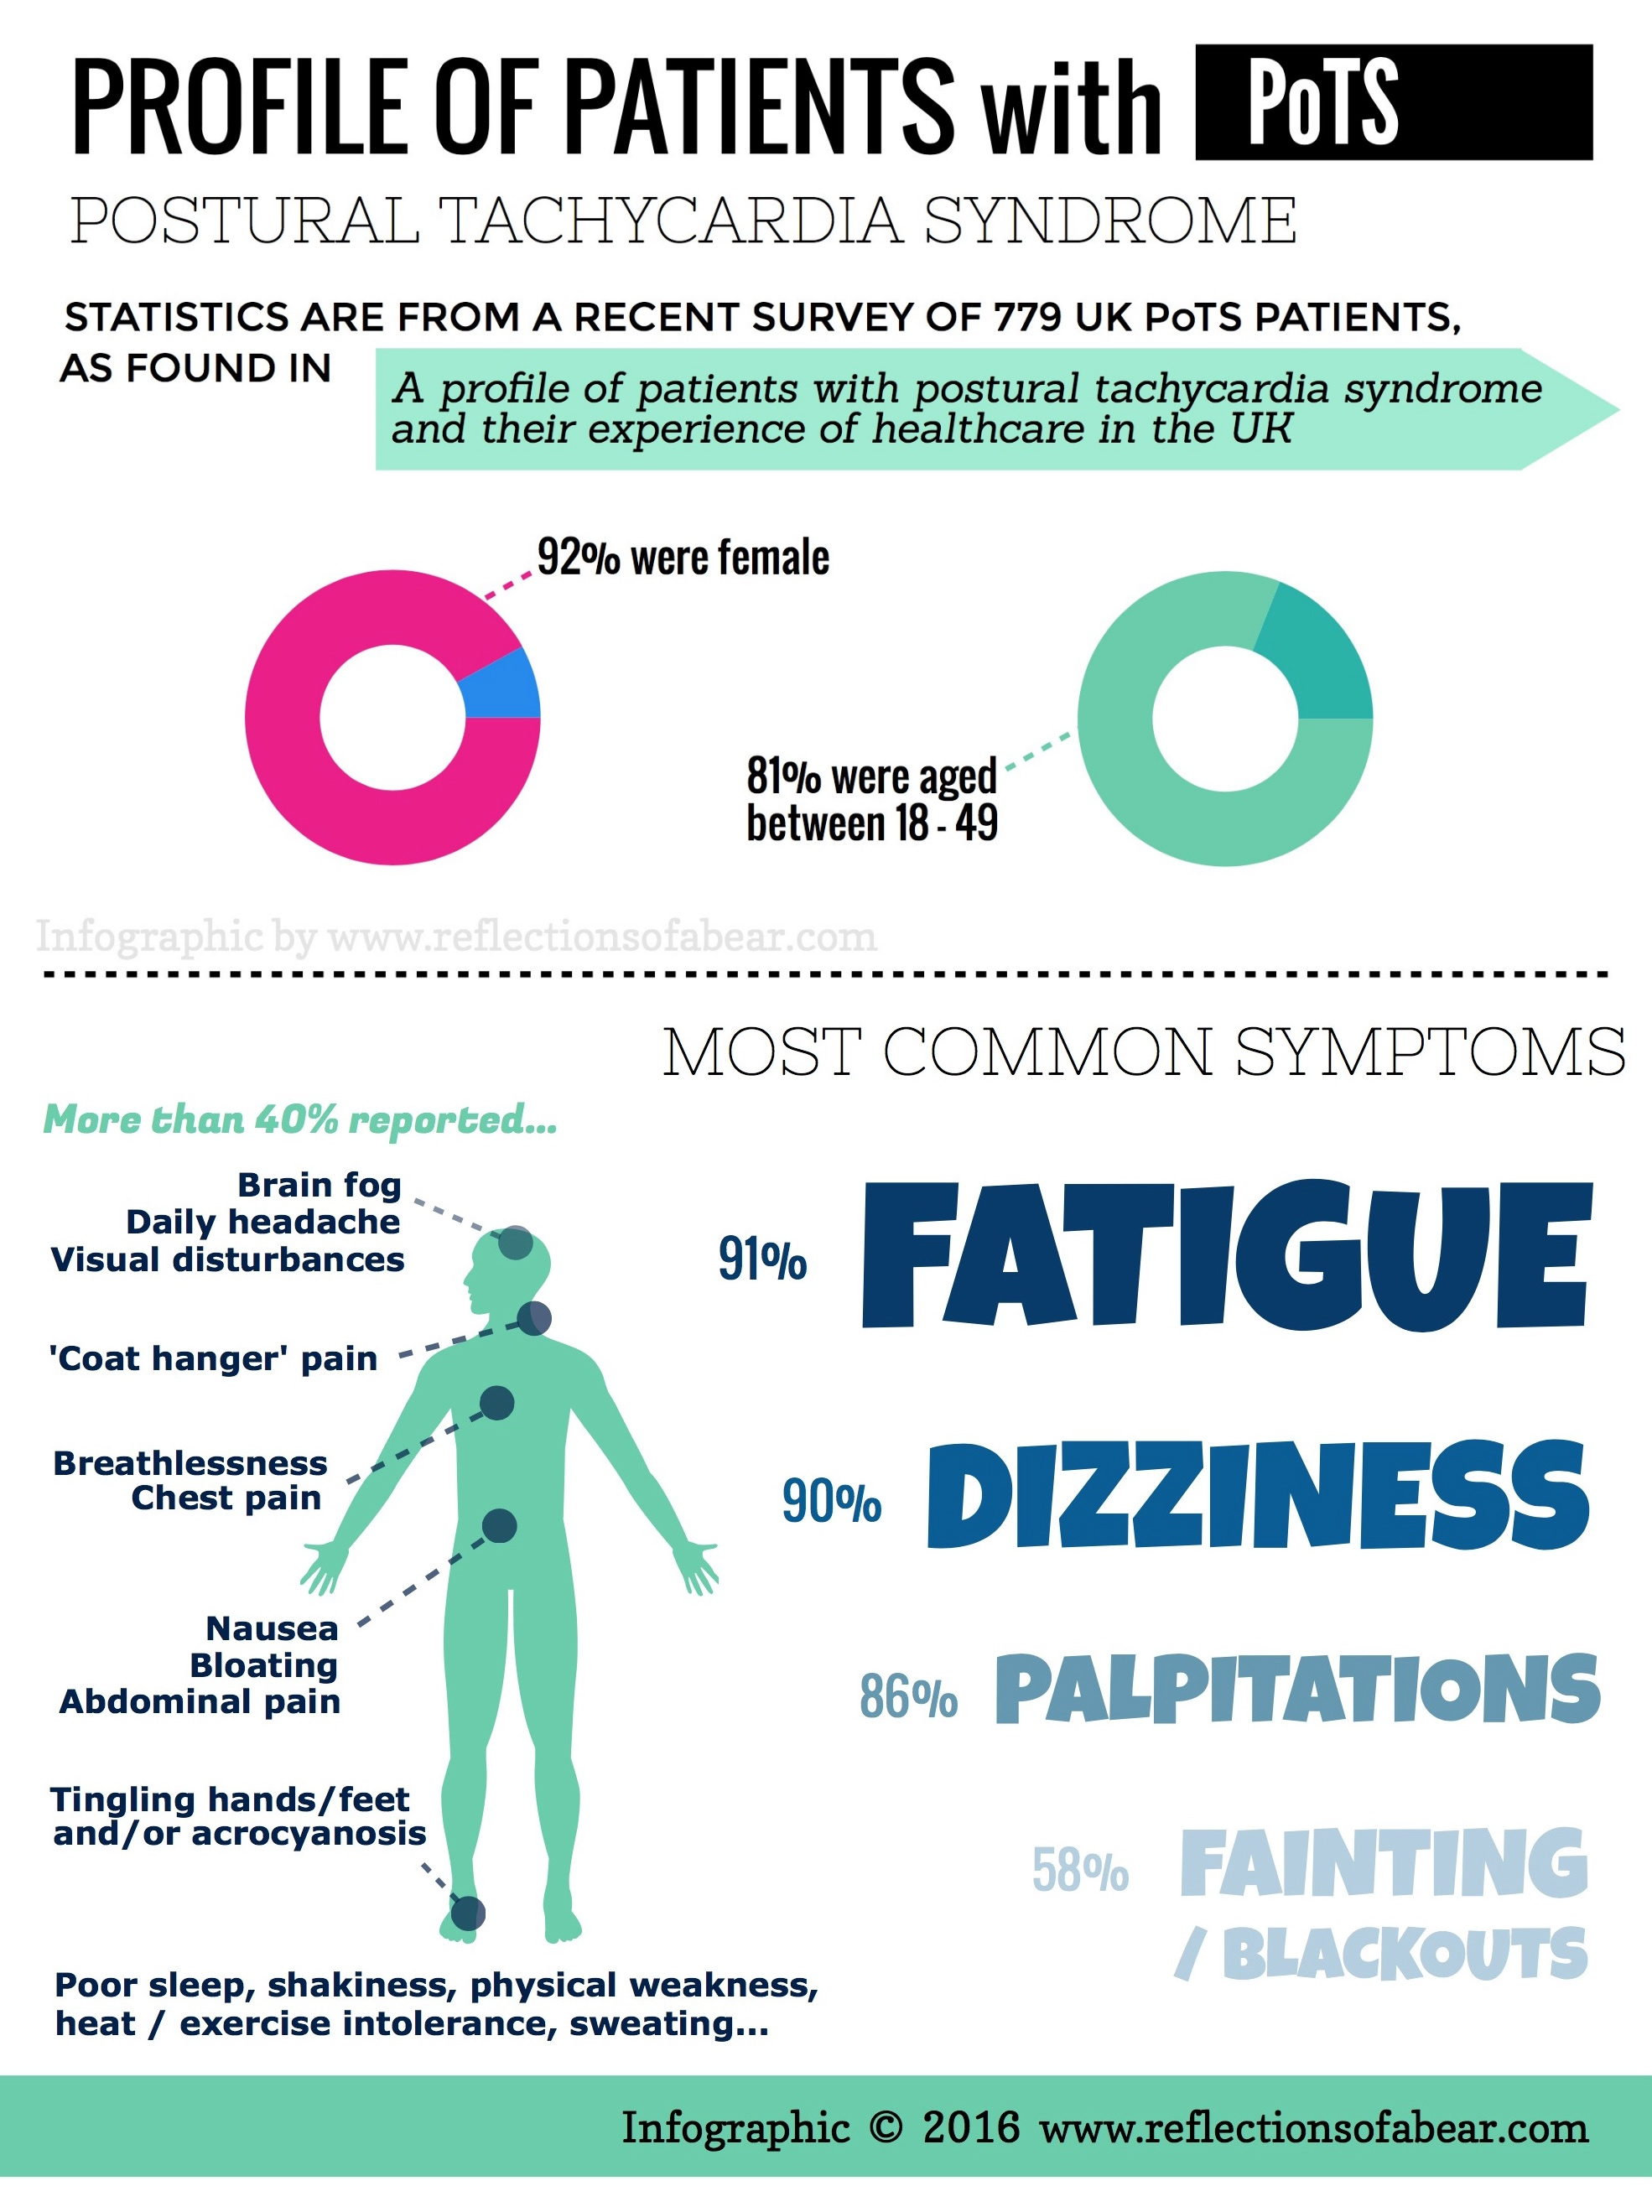 infographic profile of patients with pots most common